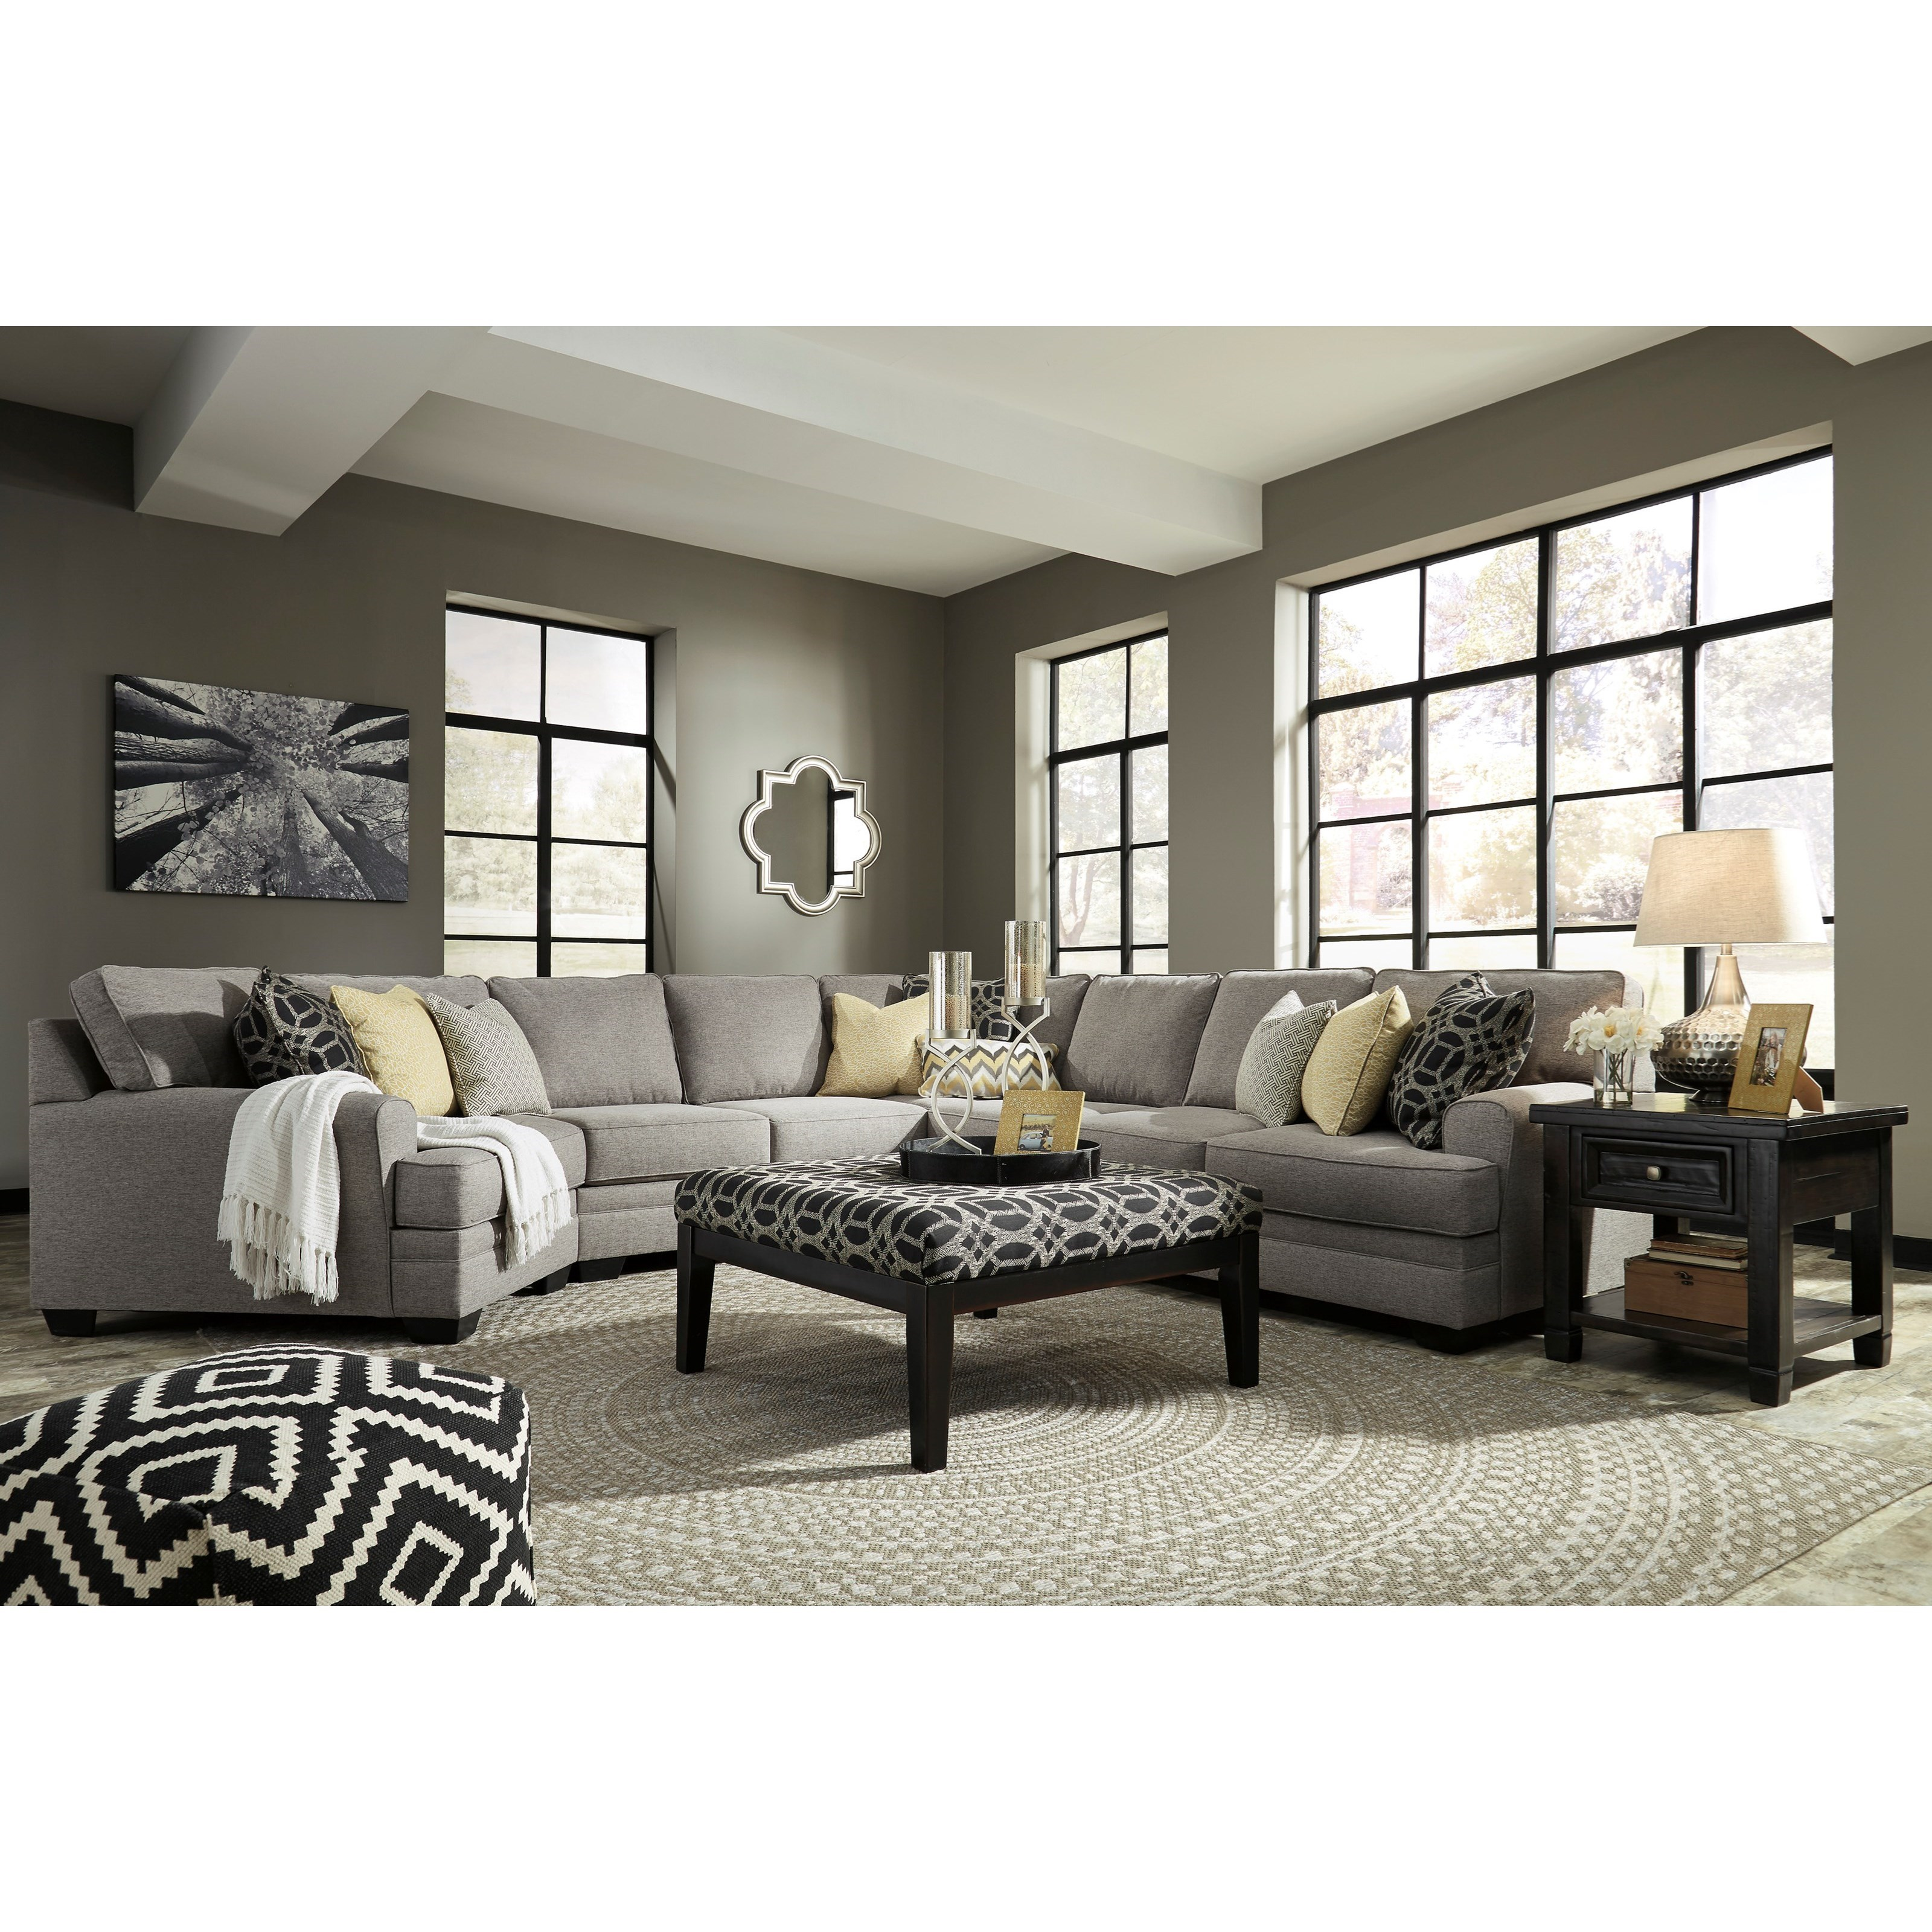 Benchcraft Cresson Stationary Living Room Group - Item Number: 54907 Living Room Group 17